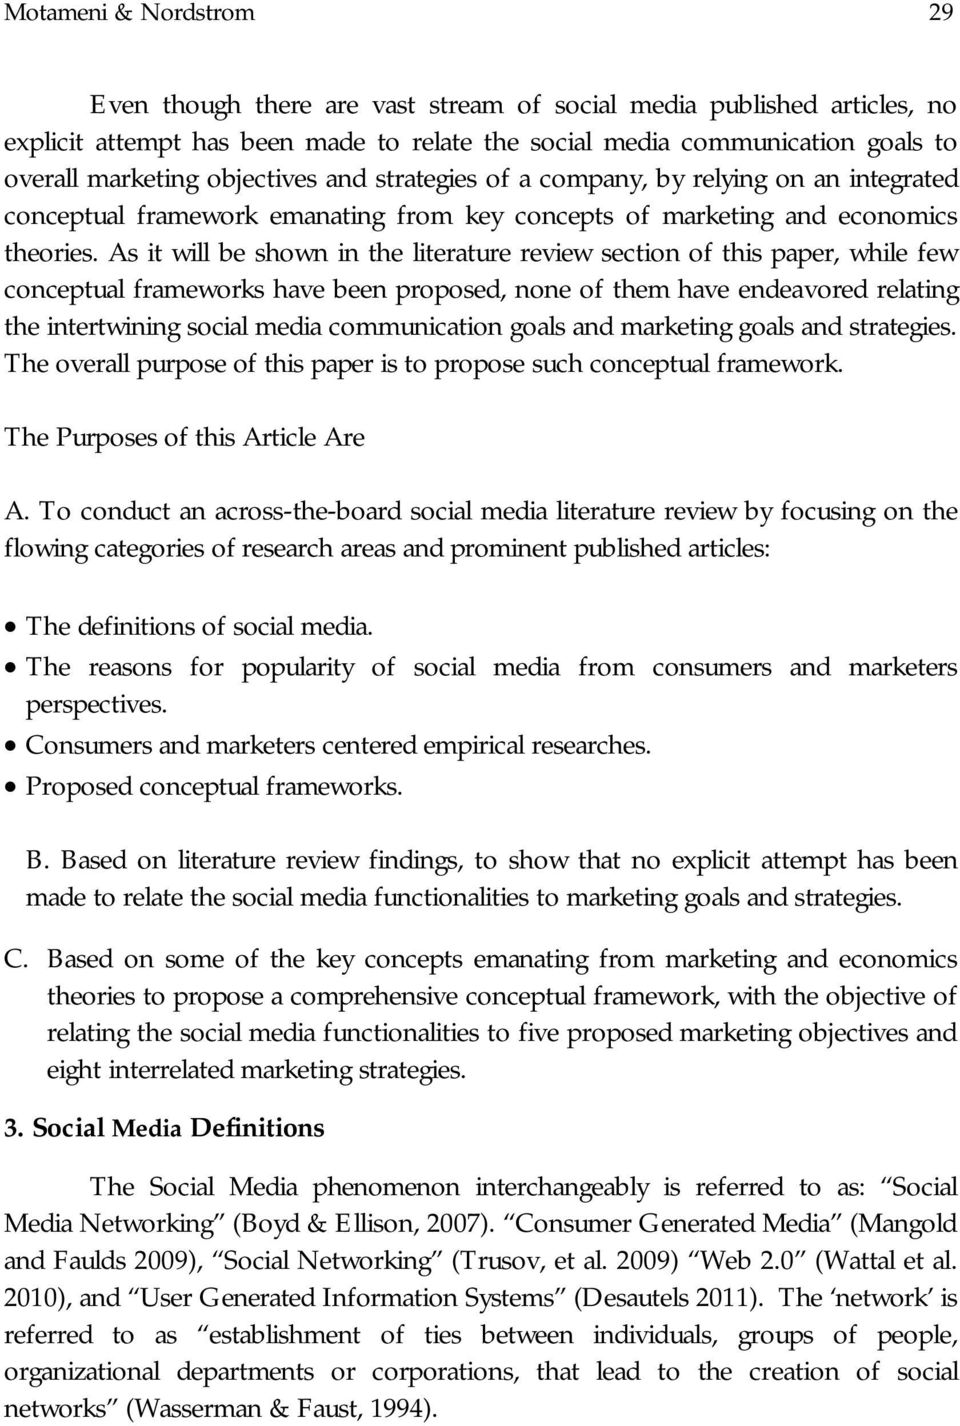 As it will be shown in the literature review section of this paper, while few conceptual frameworks have been proposed, none of them have endeavored relating the intertwining social media